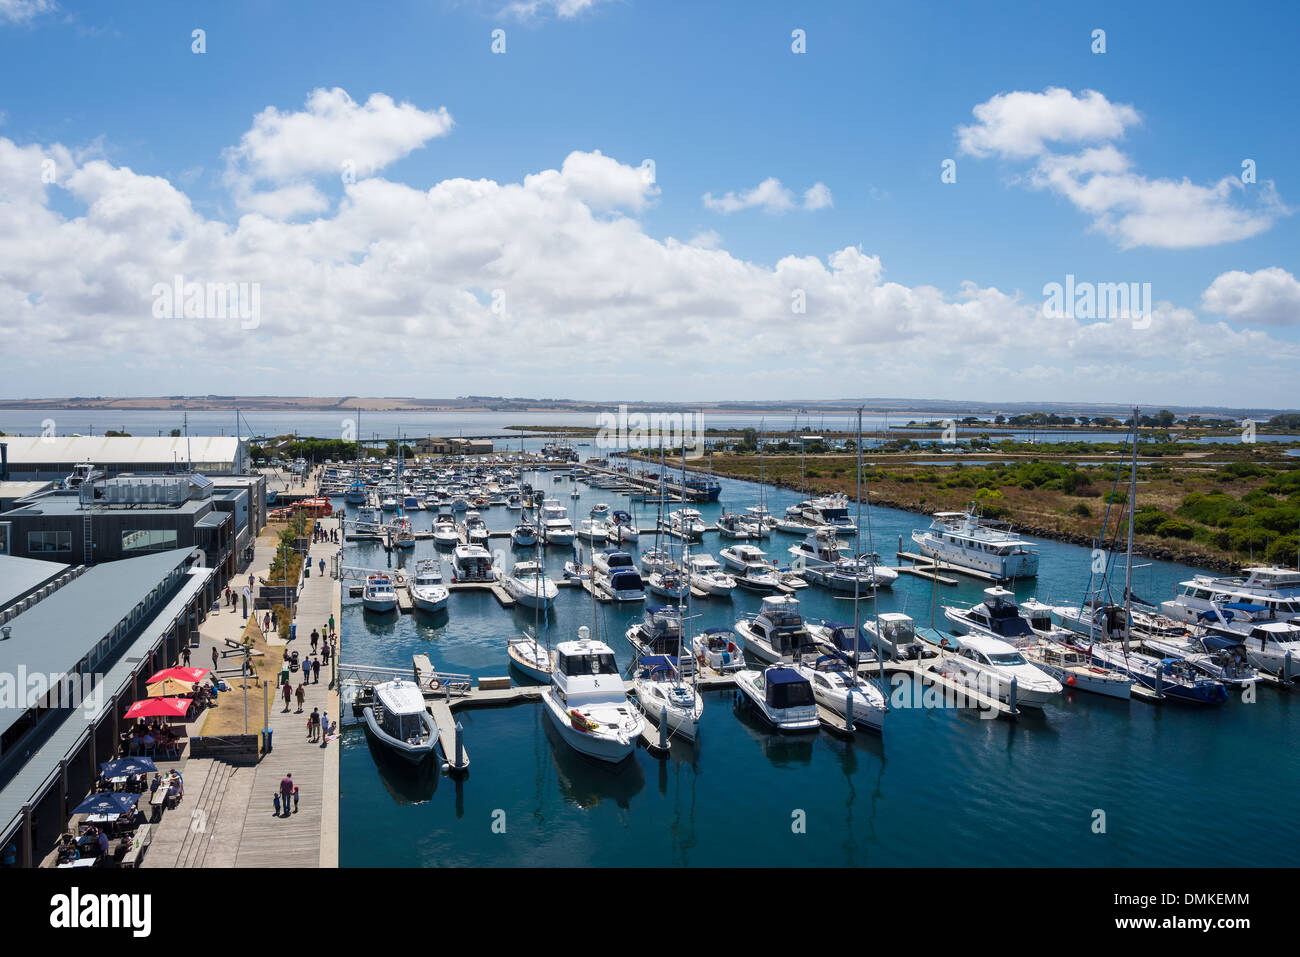 Queenscliff marina Stock Photo